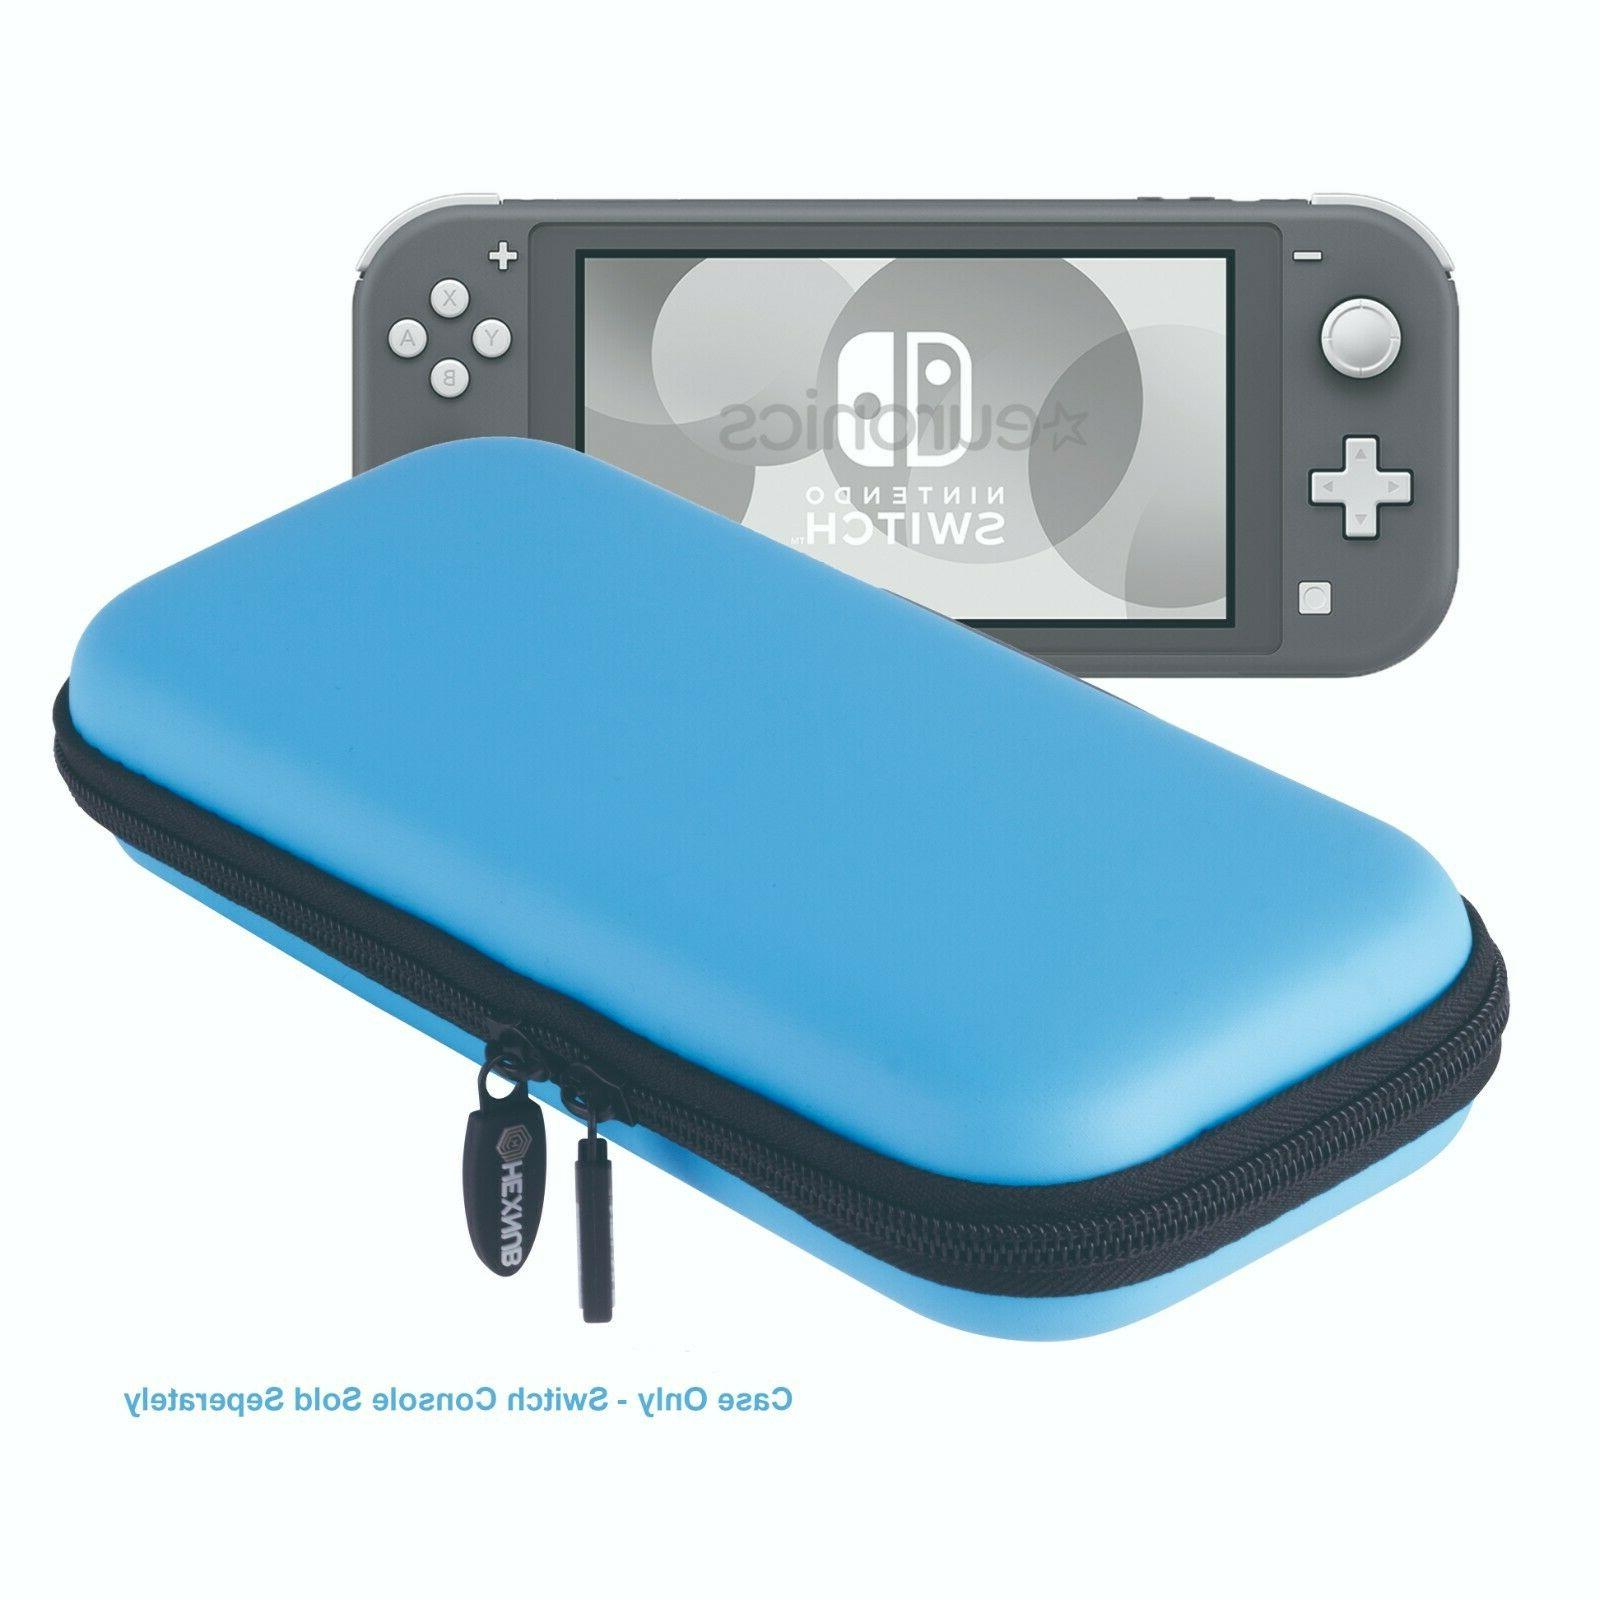 nintendo switch lite carry case holds console